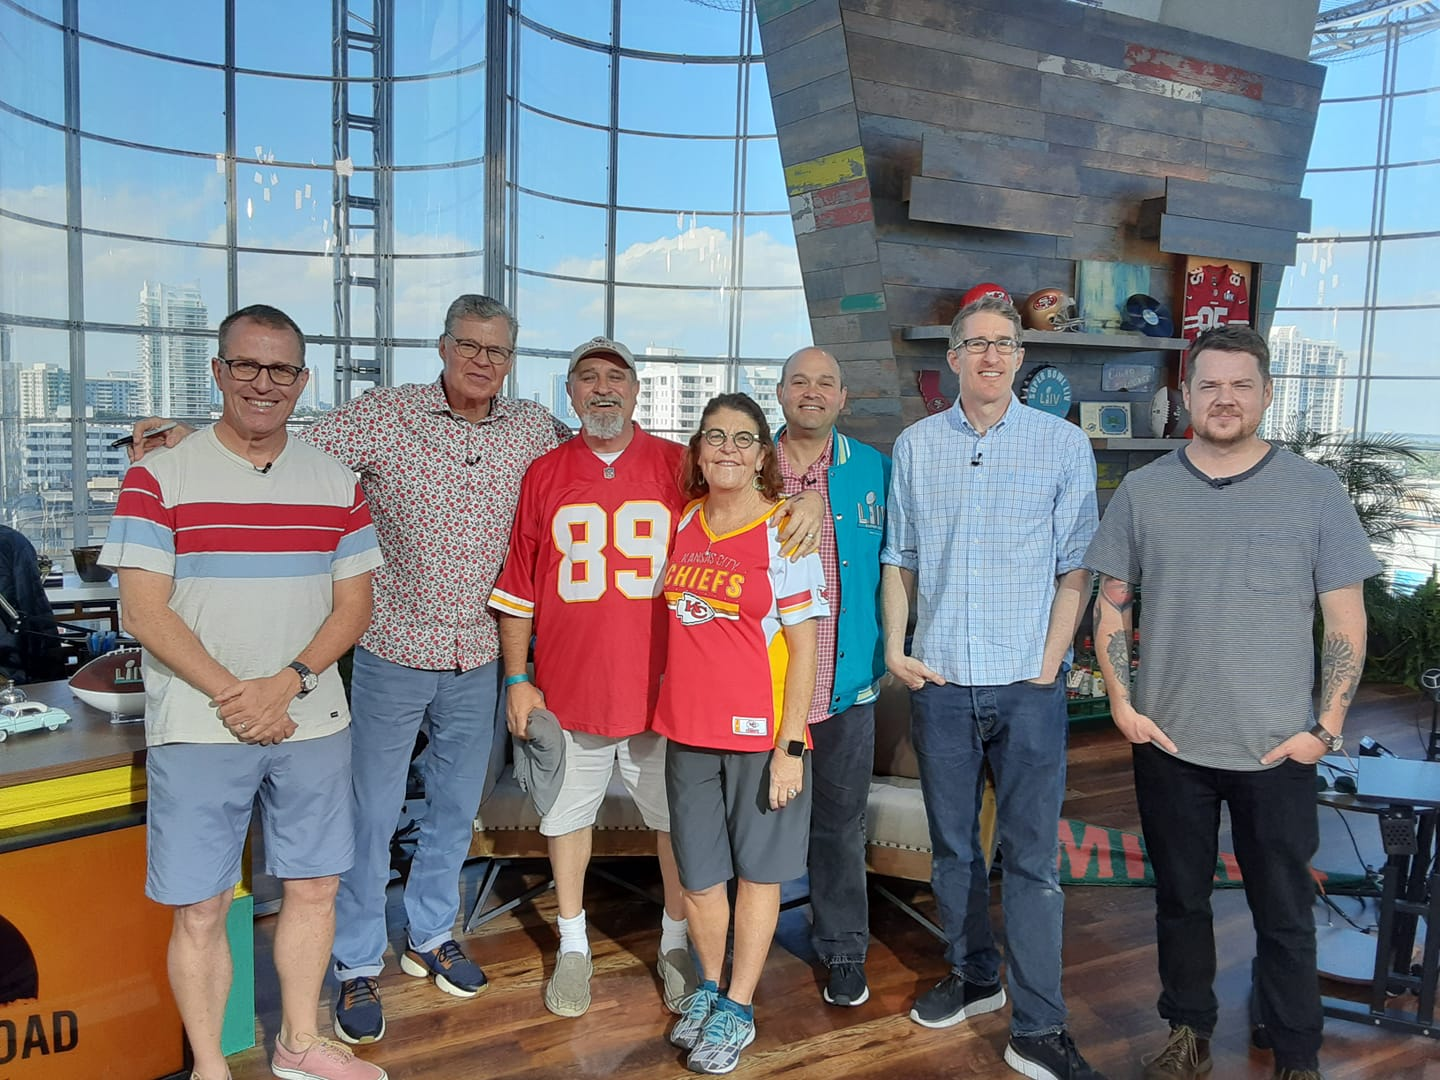 Group Shot from Dan Patrick Show in Miami